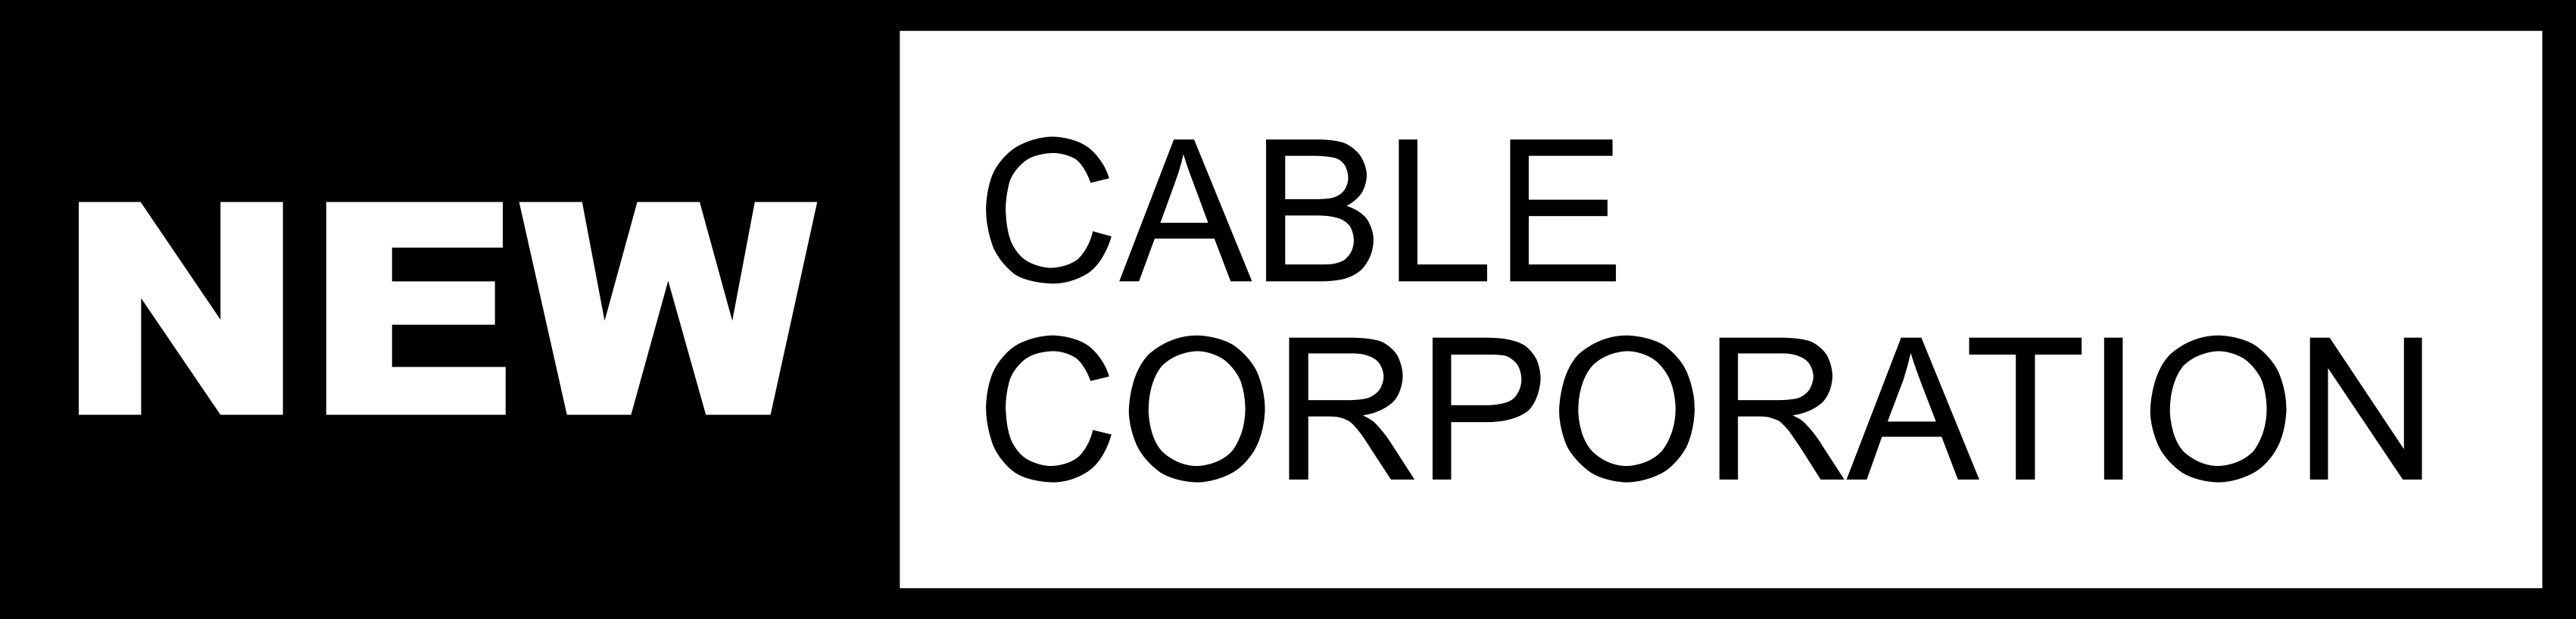 New Cable Corporation Oy